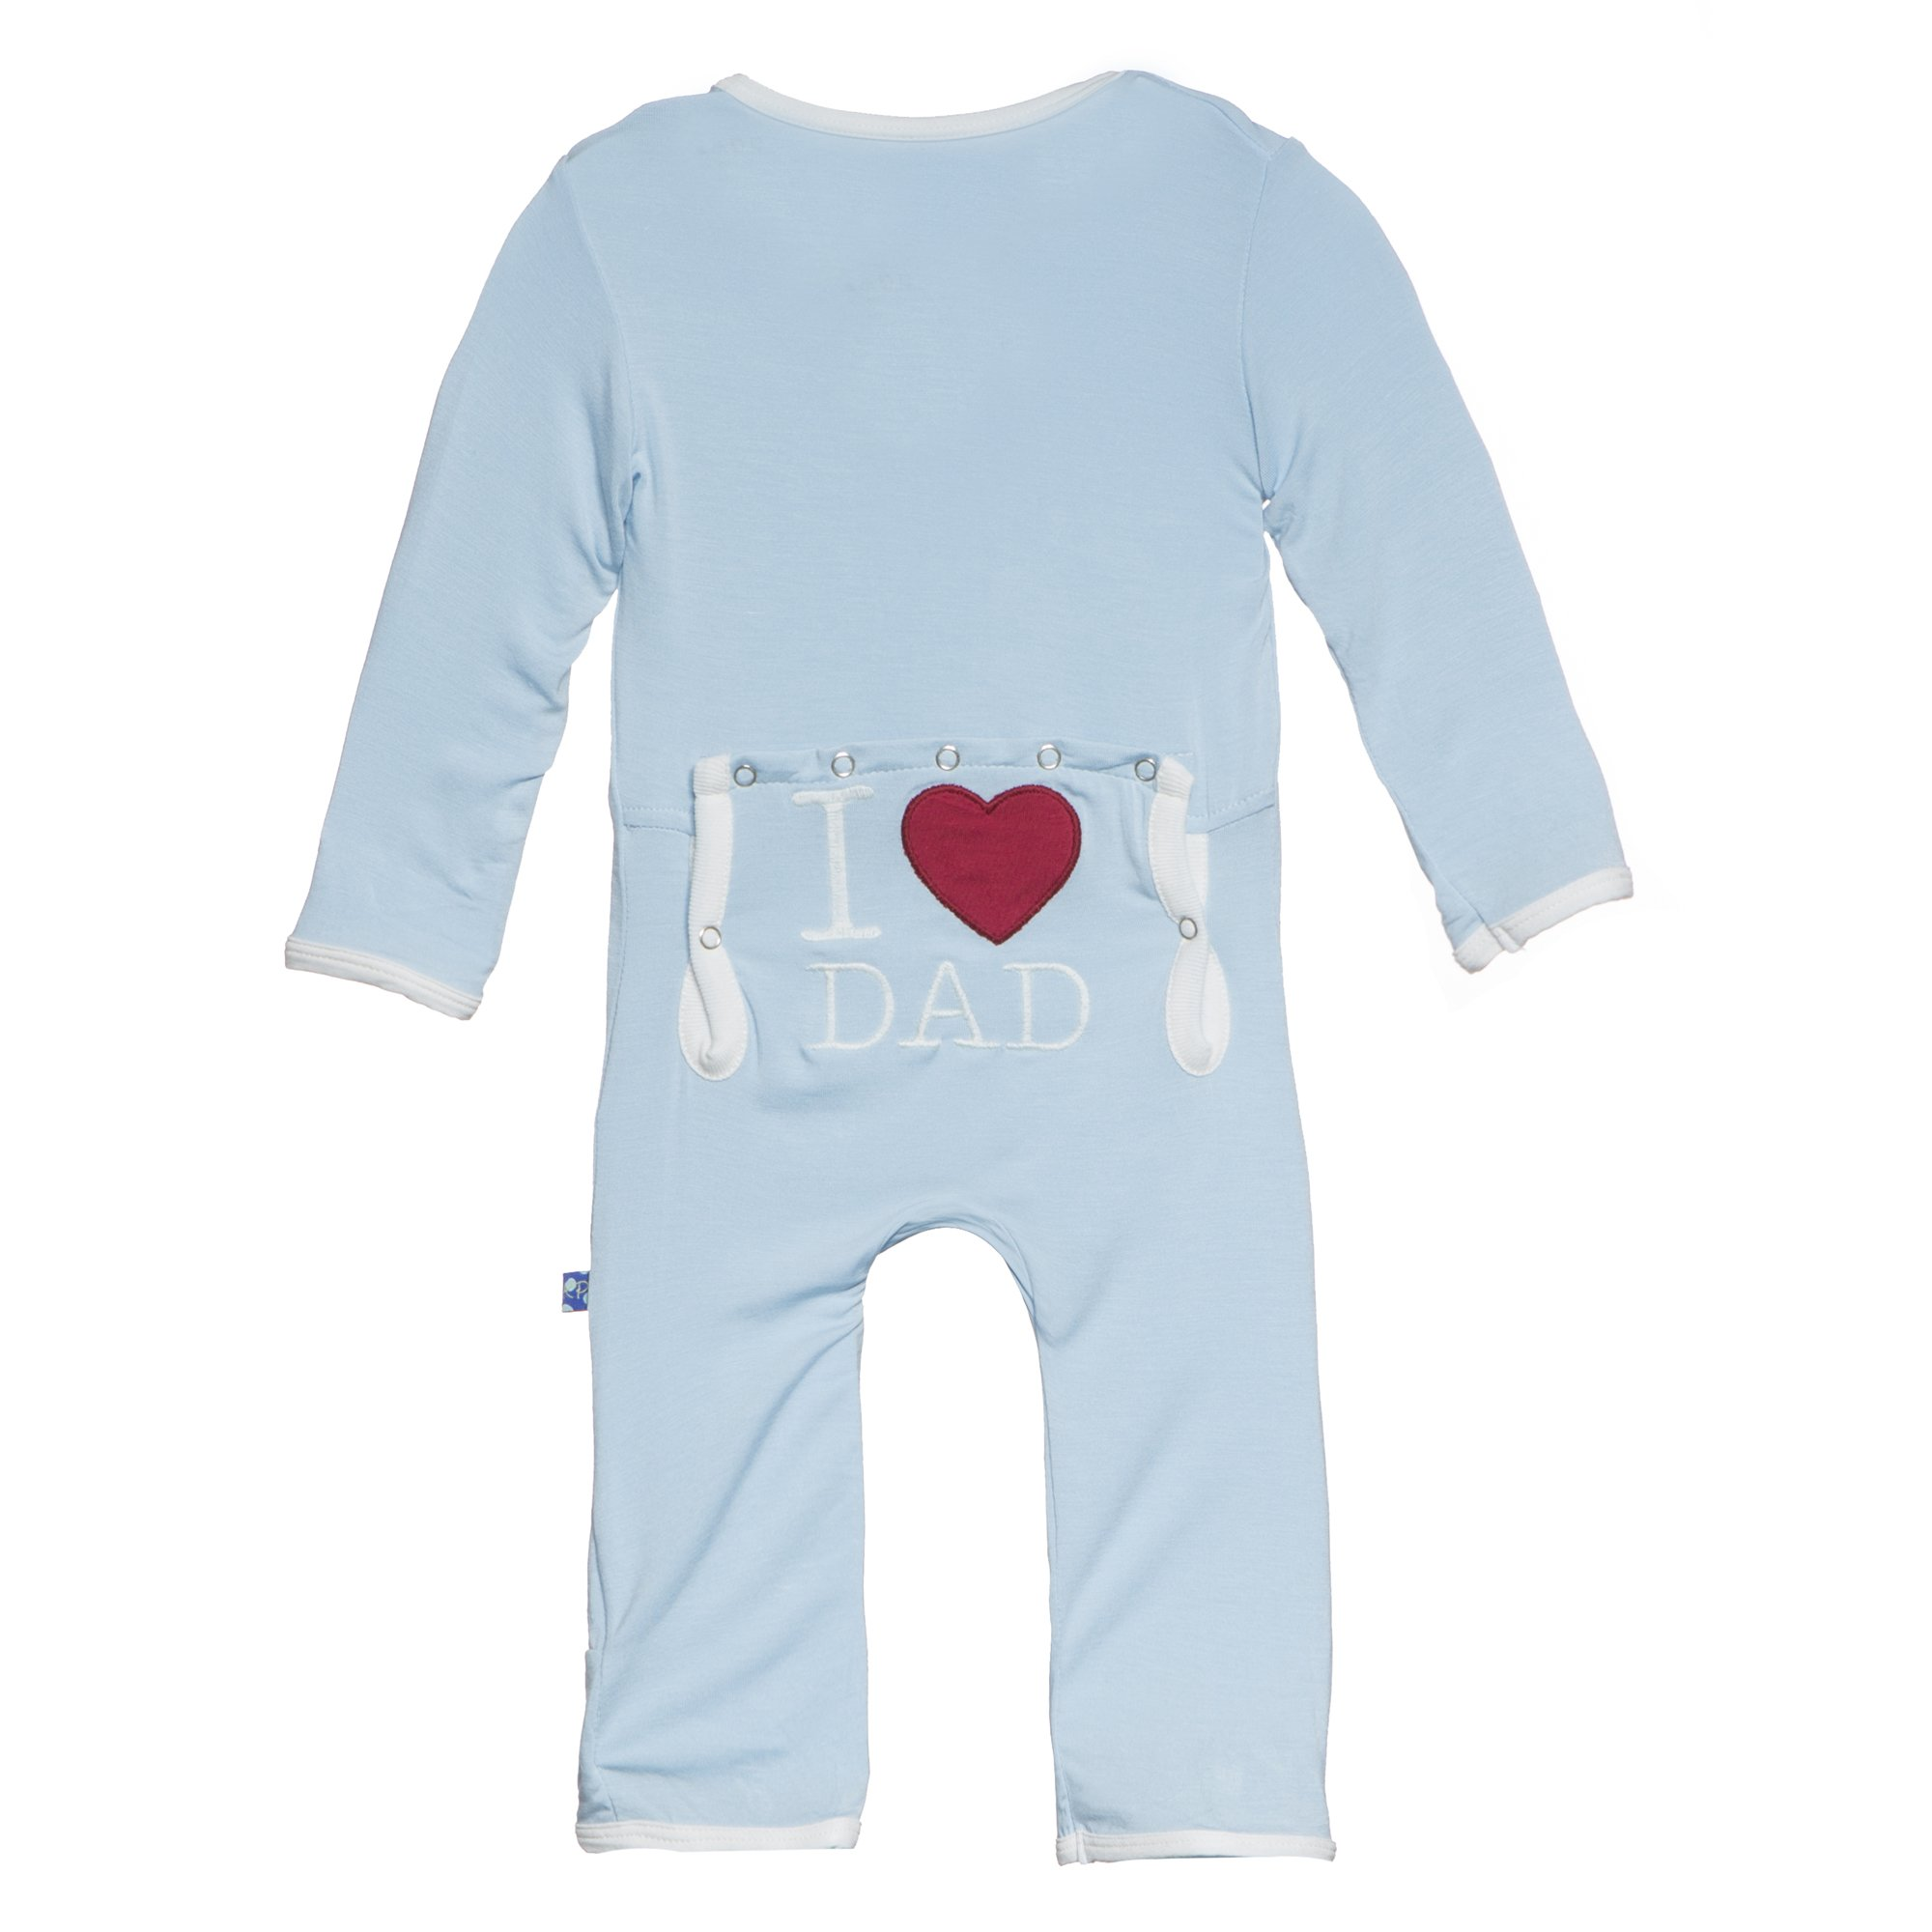 Kickee Pants Baby Boys' Fitted Applique Coverall in Pond I Love Dad, 3-6M